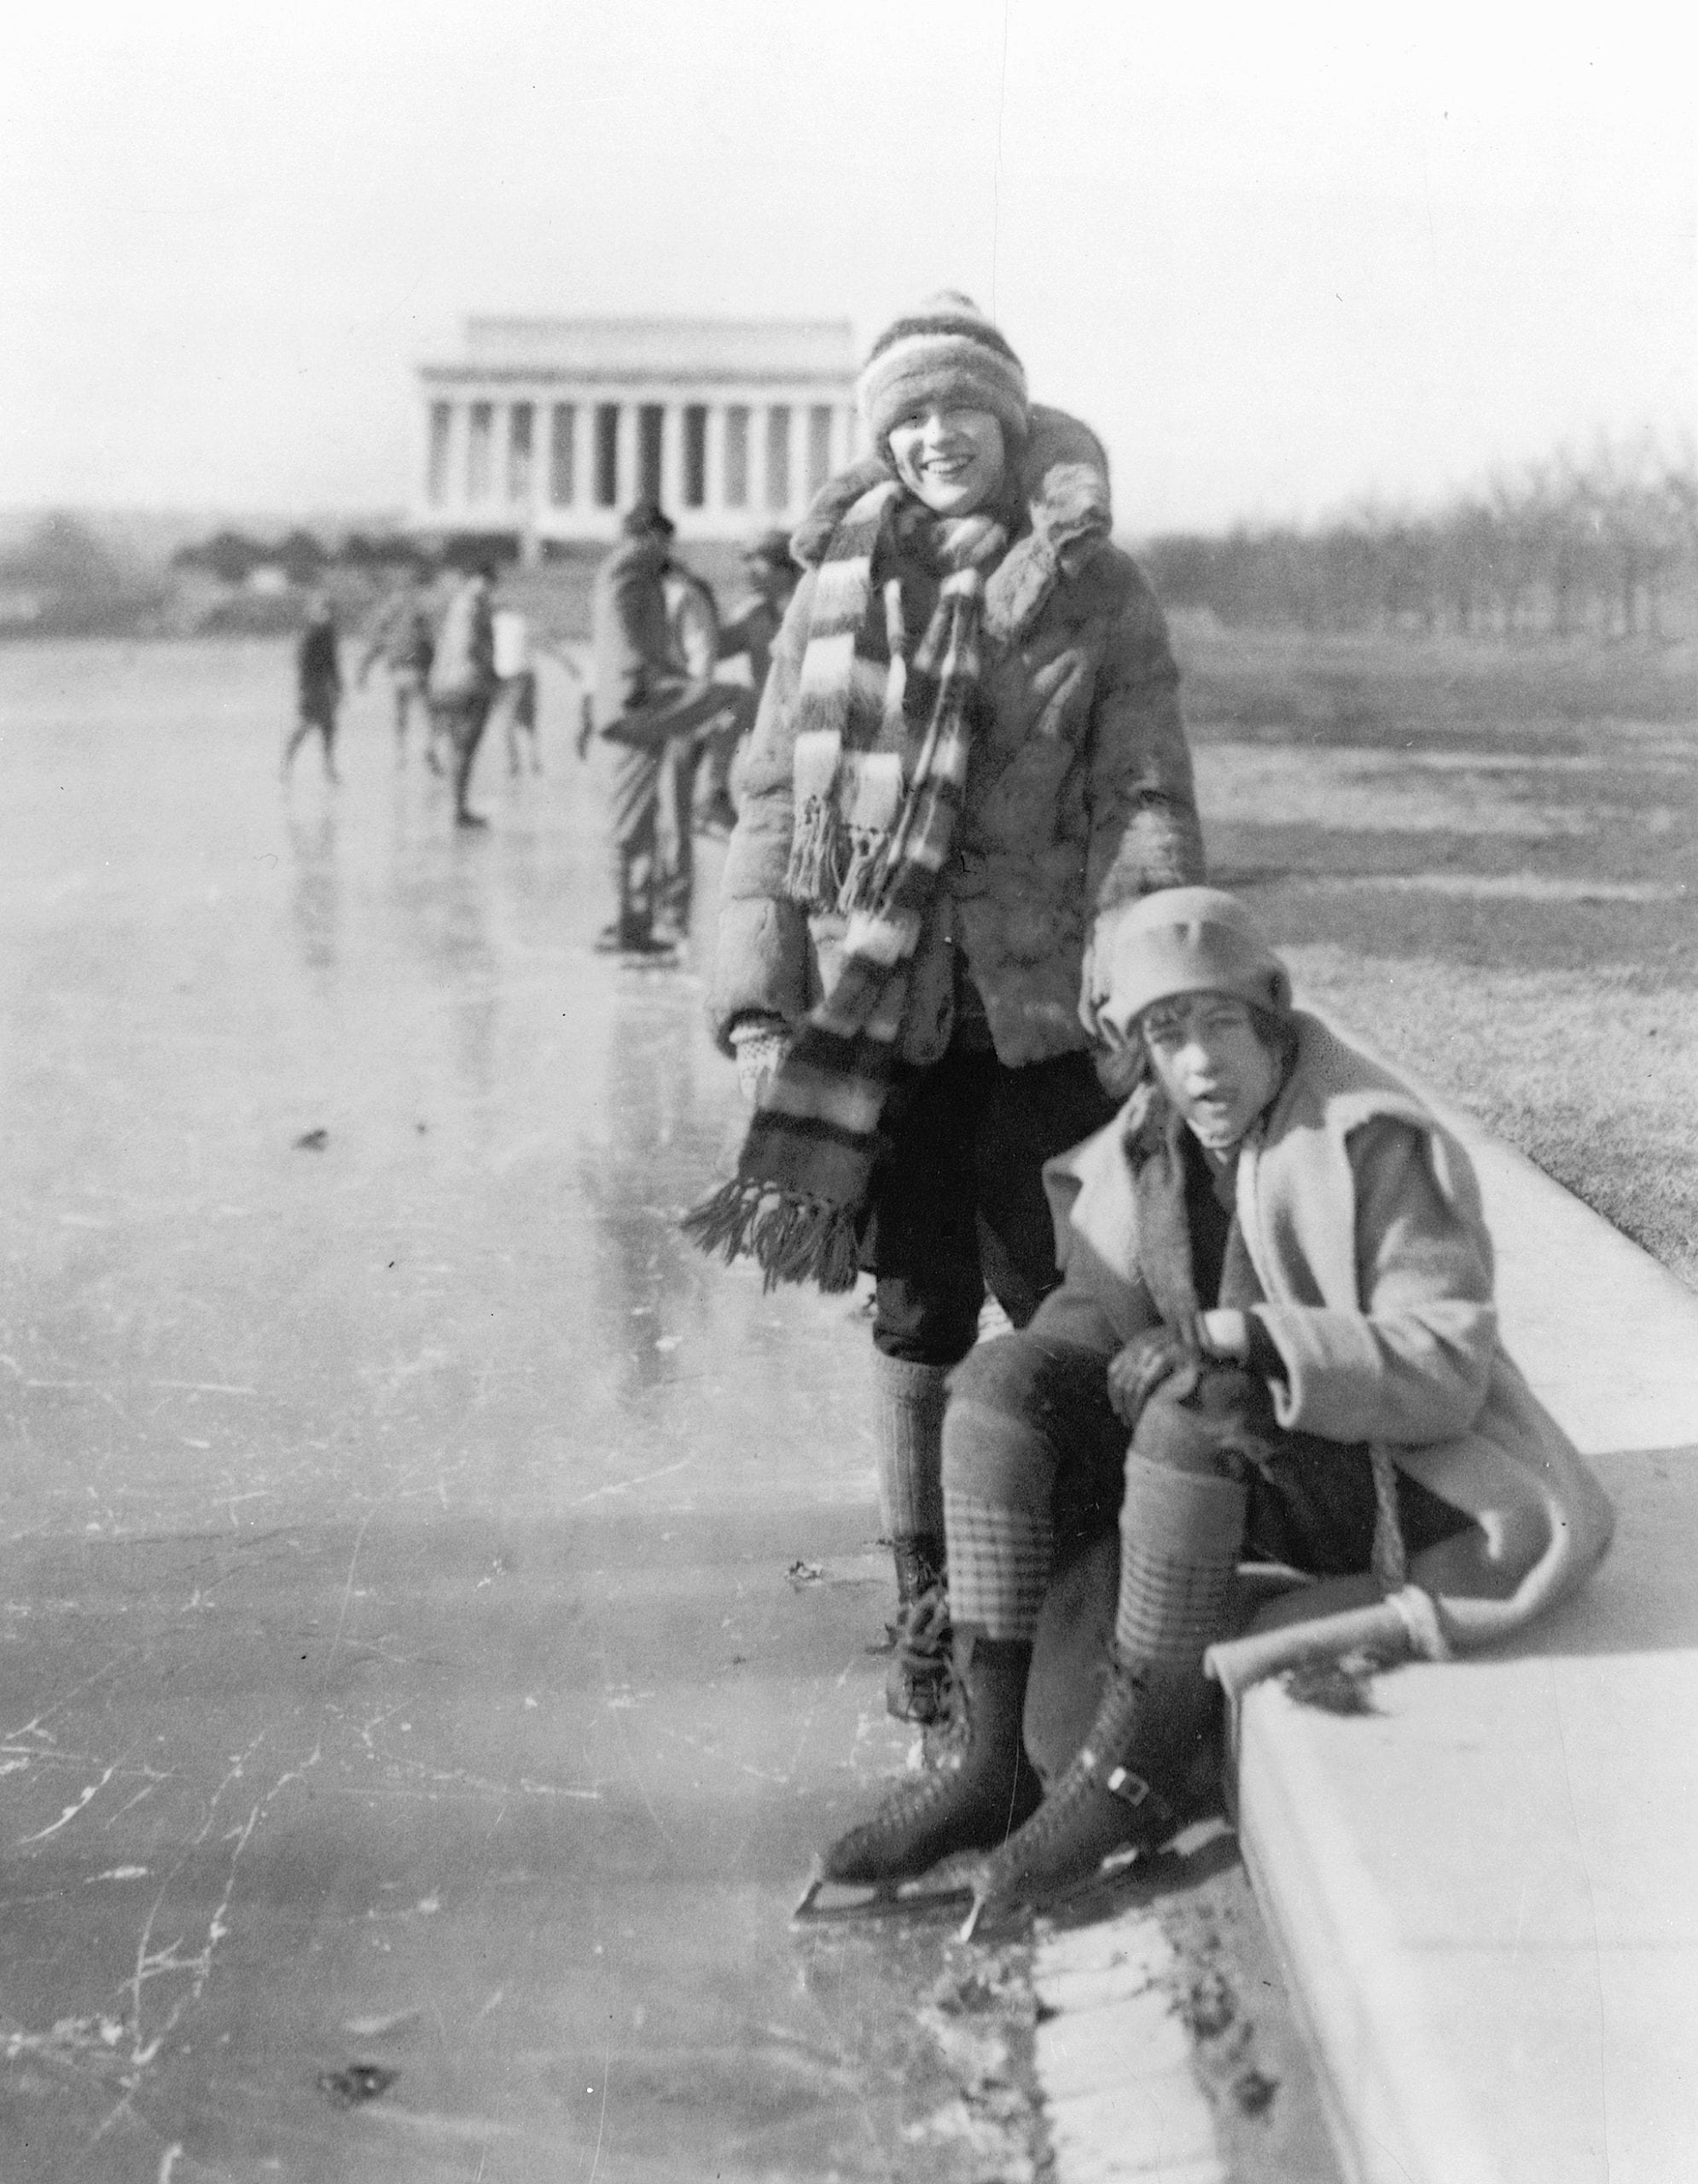 Ice Skating on the Reflecting Pool